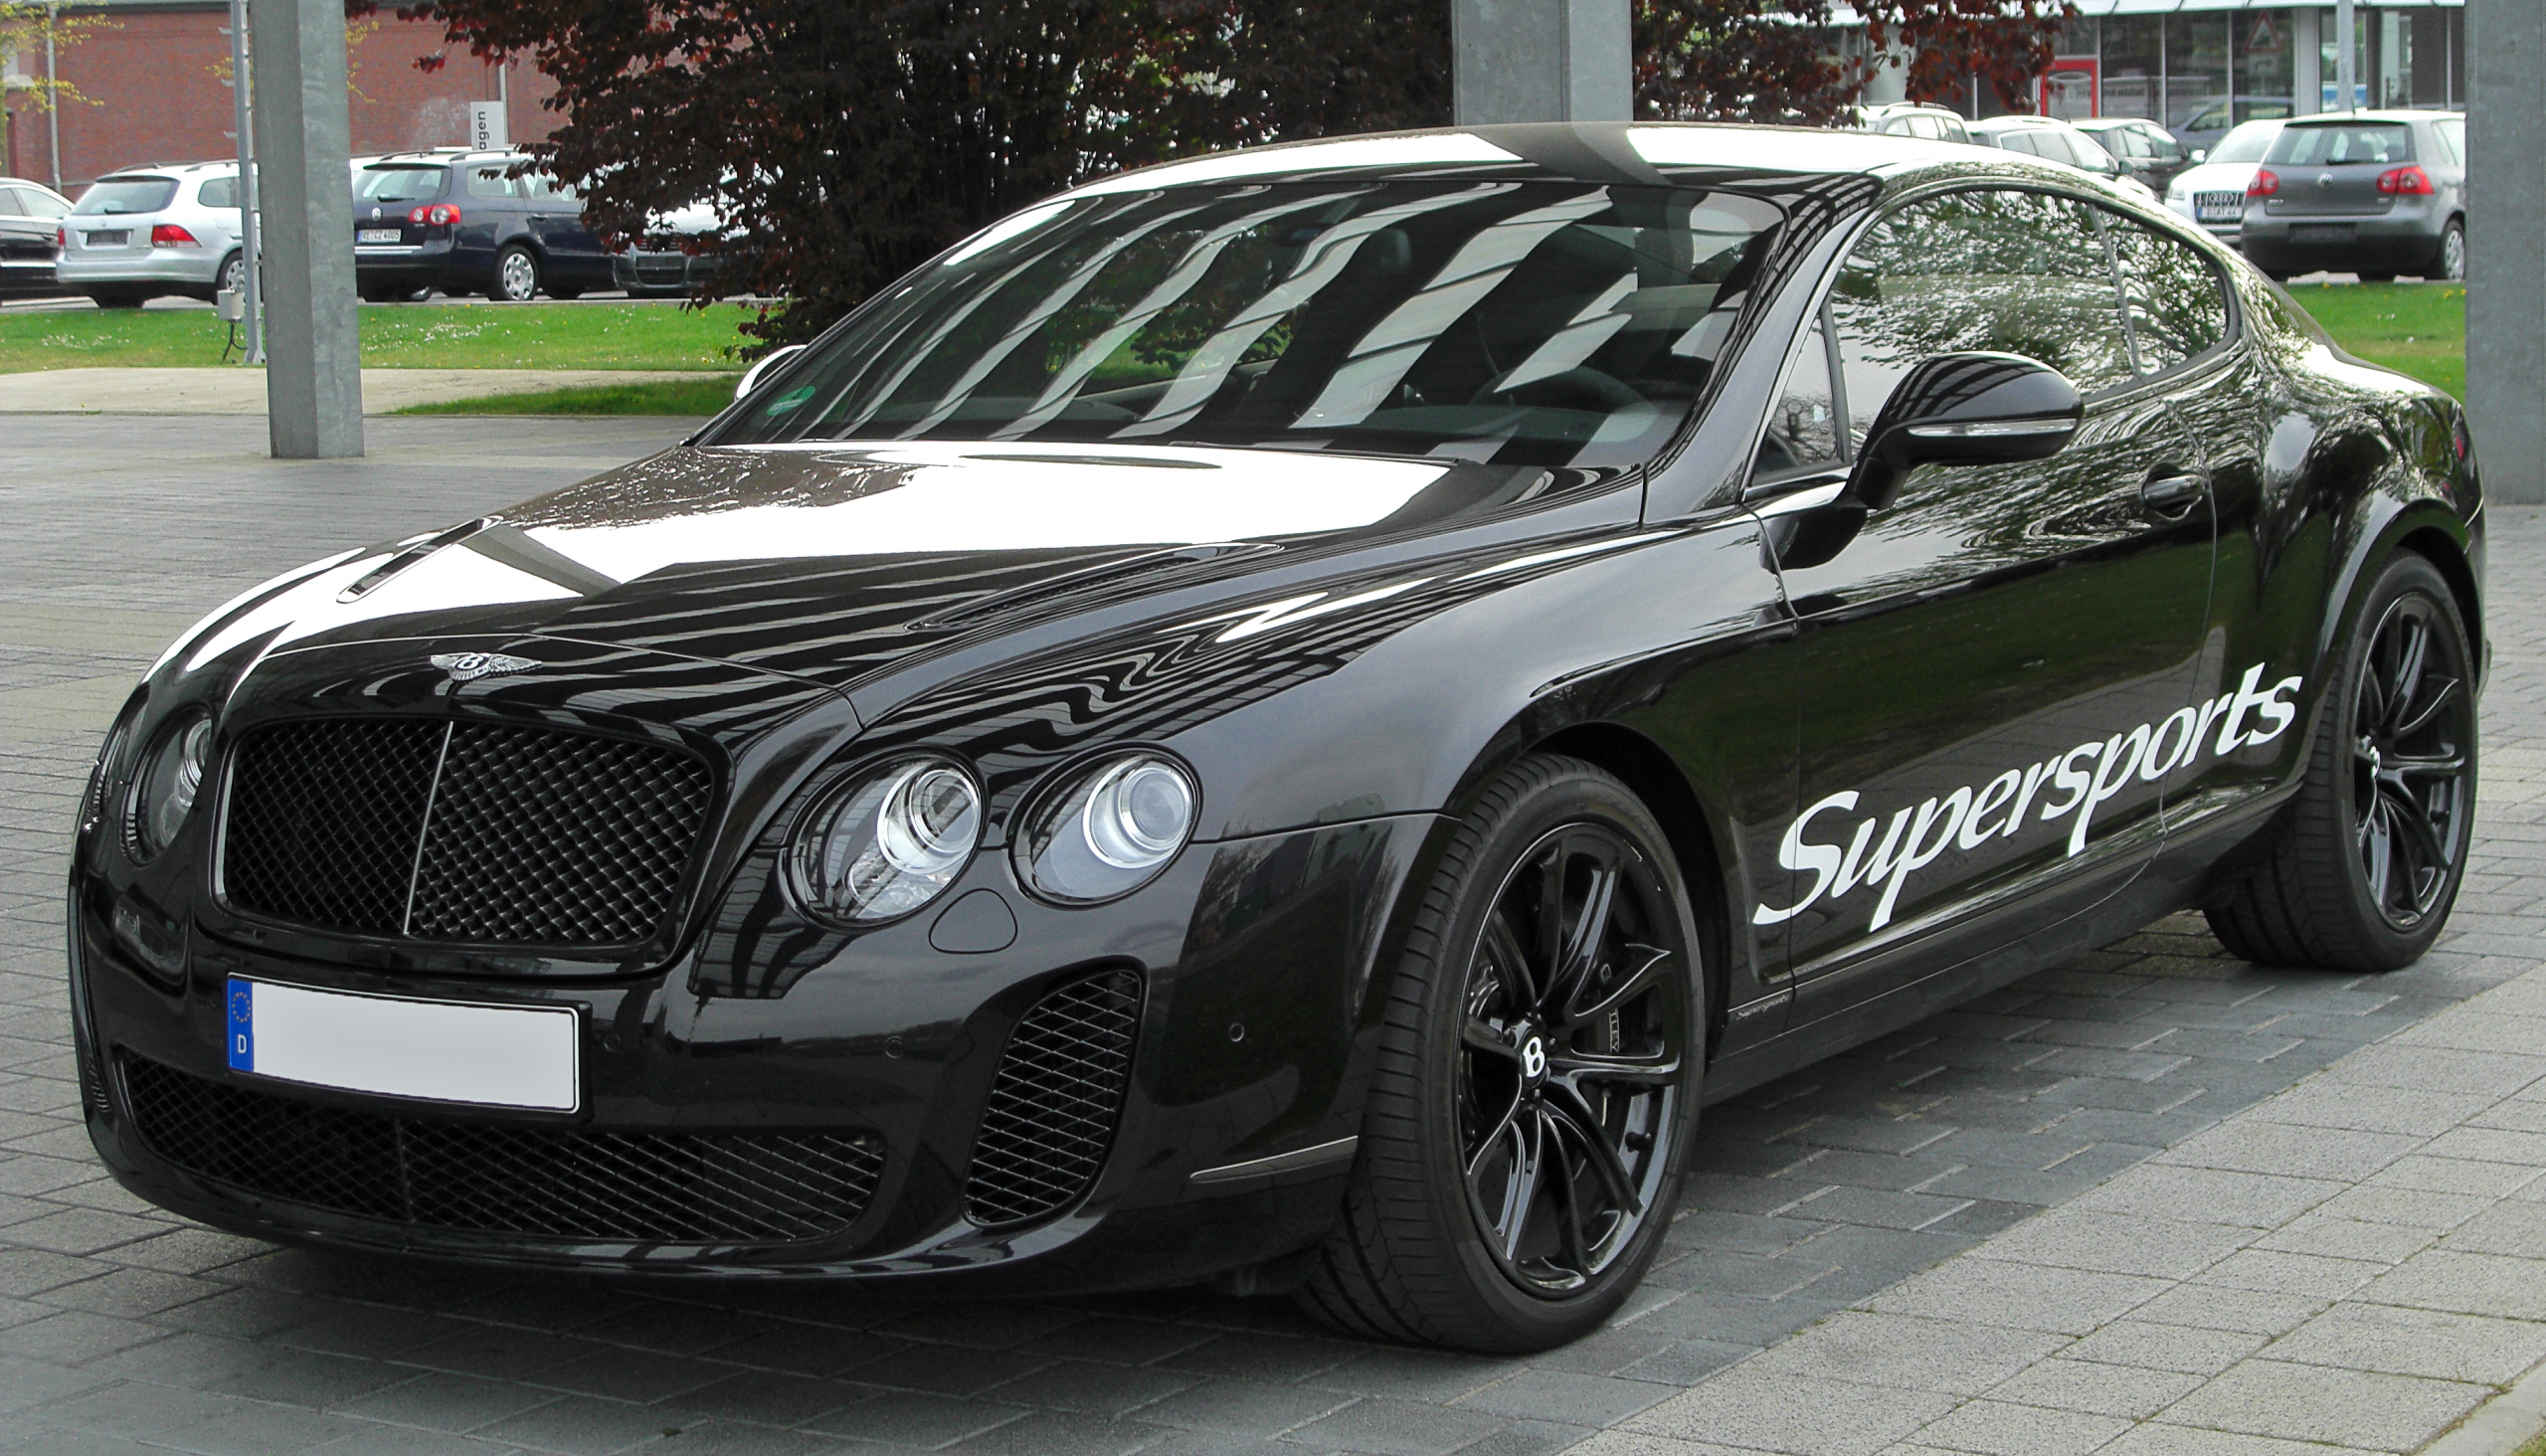 file bentley continental gt supersports front wikimedia commons. Black Bedroom Furniture Sets. Home Design Ideas